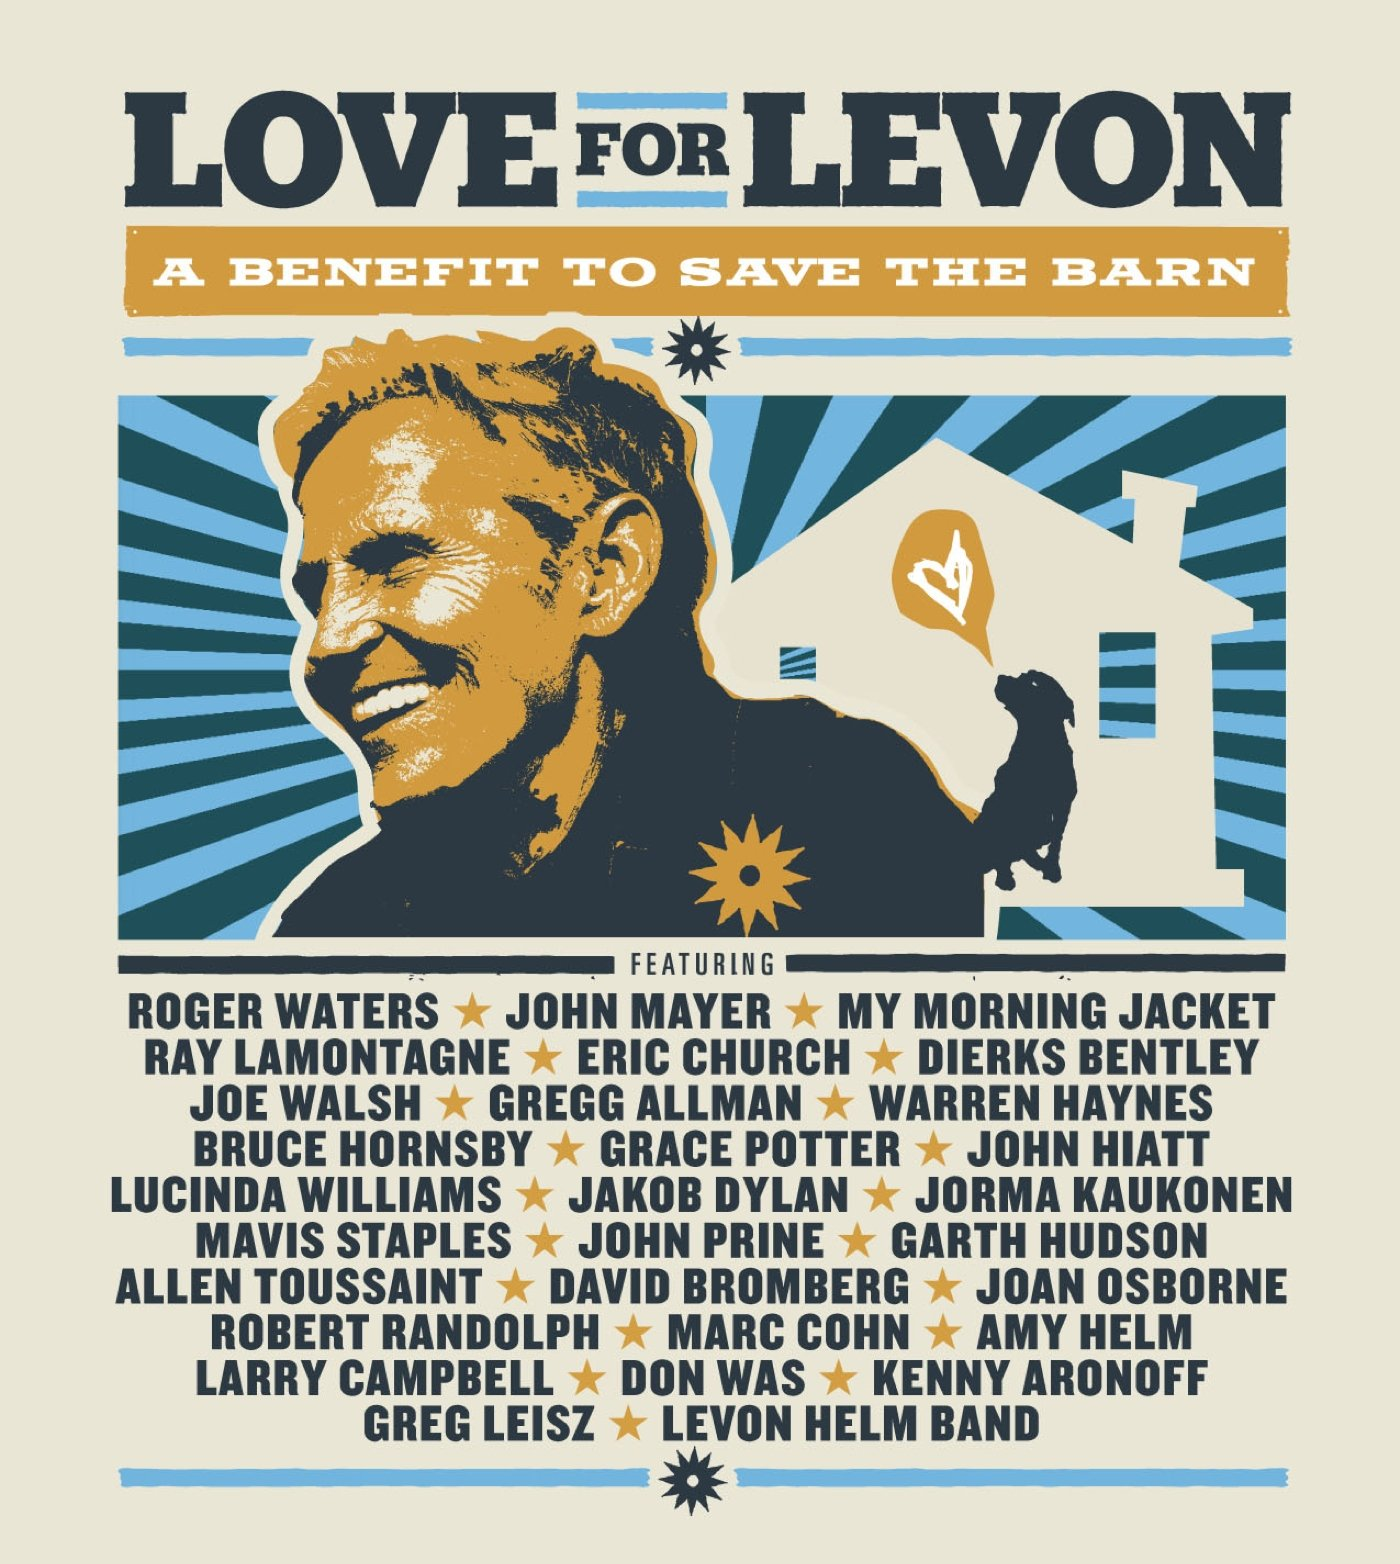 Blu-ray : Love for Levon - Love for Levon: A Benefit to Save the Barn (Super Jewel Box, 2 Disc)